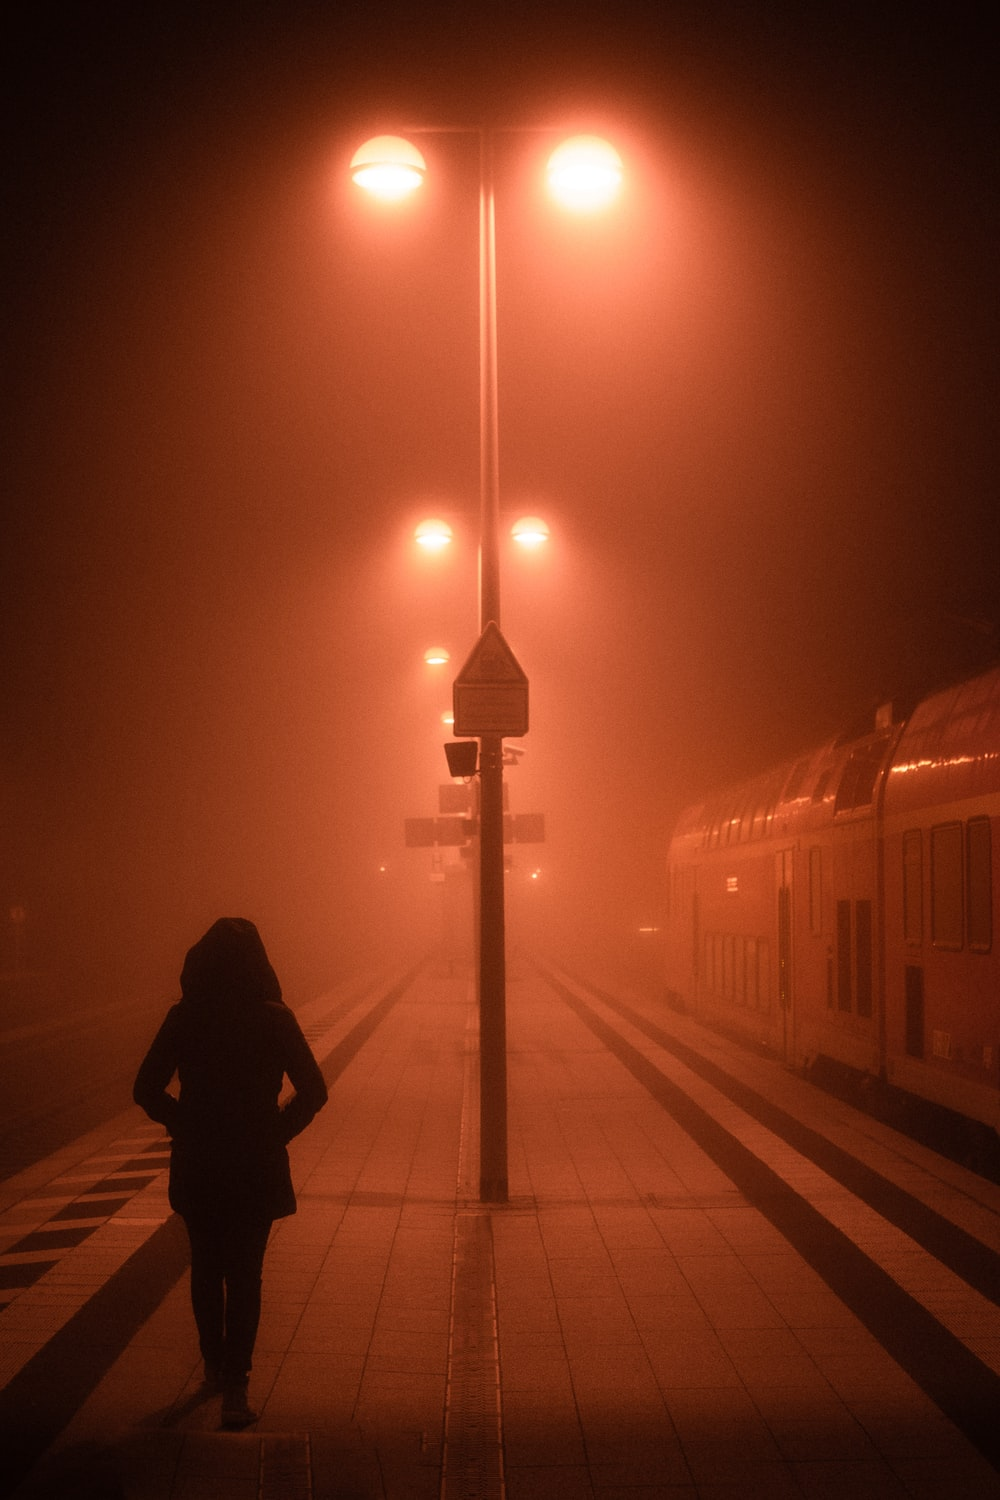 man in black jacket standing near train during night time